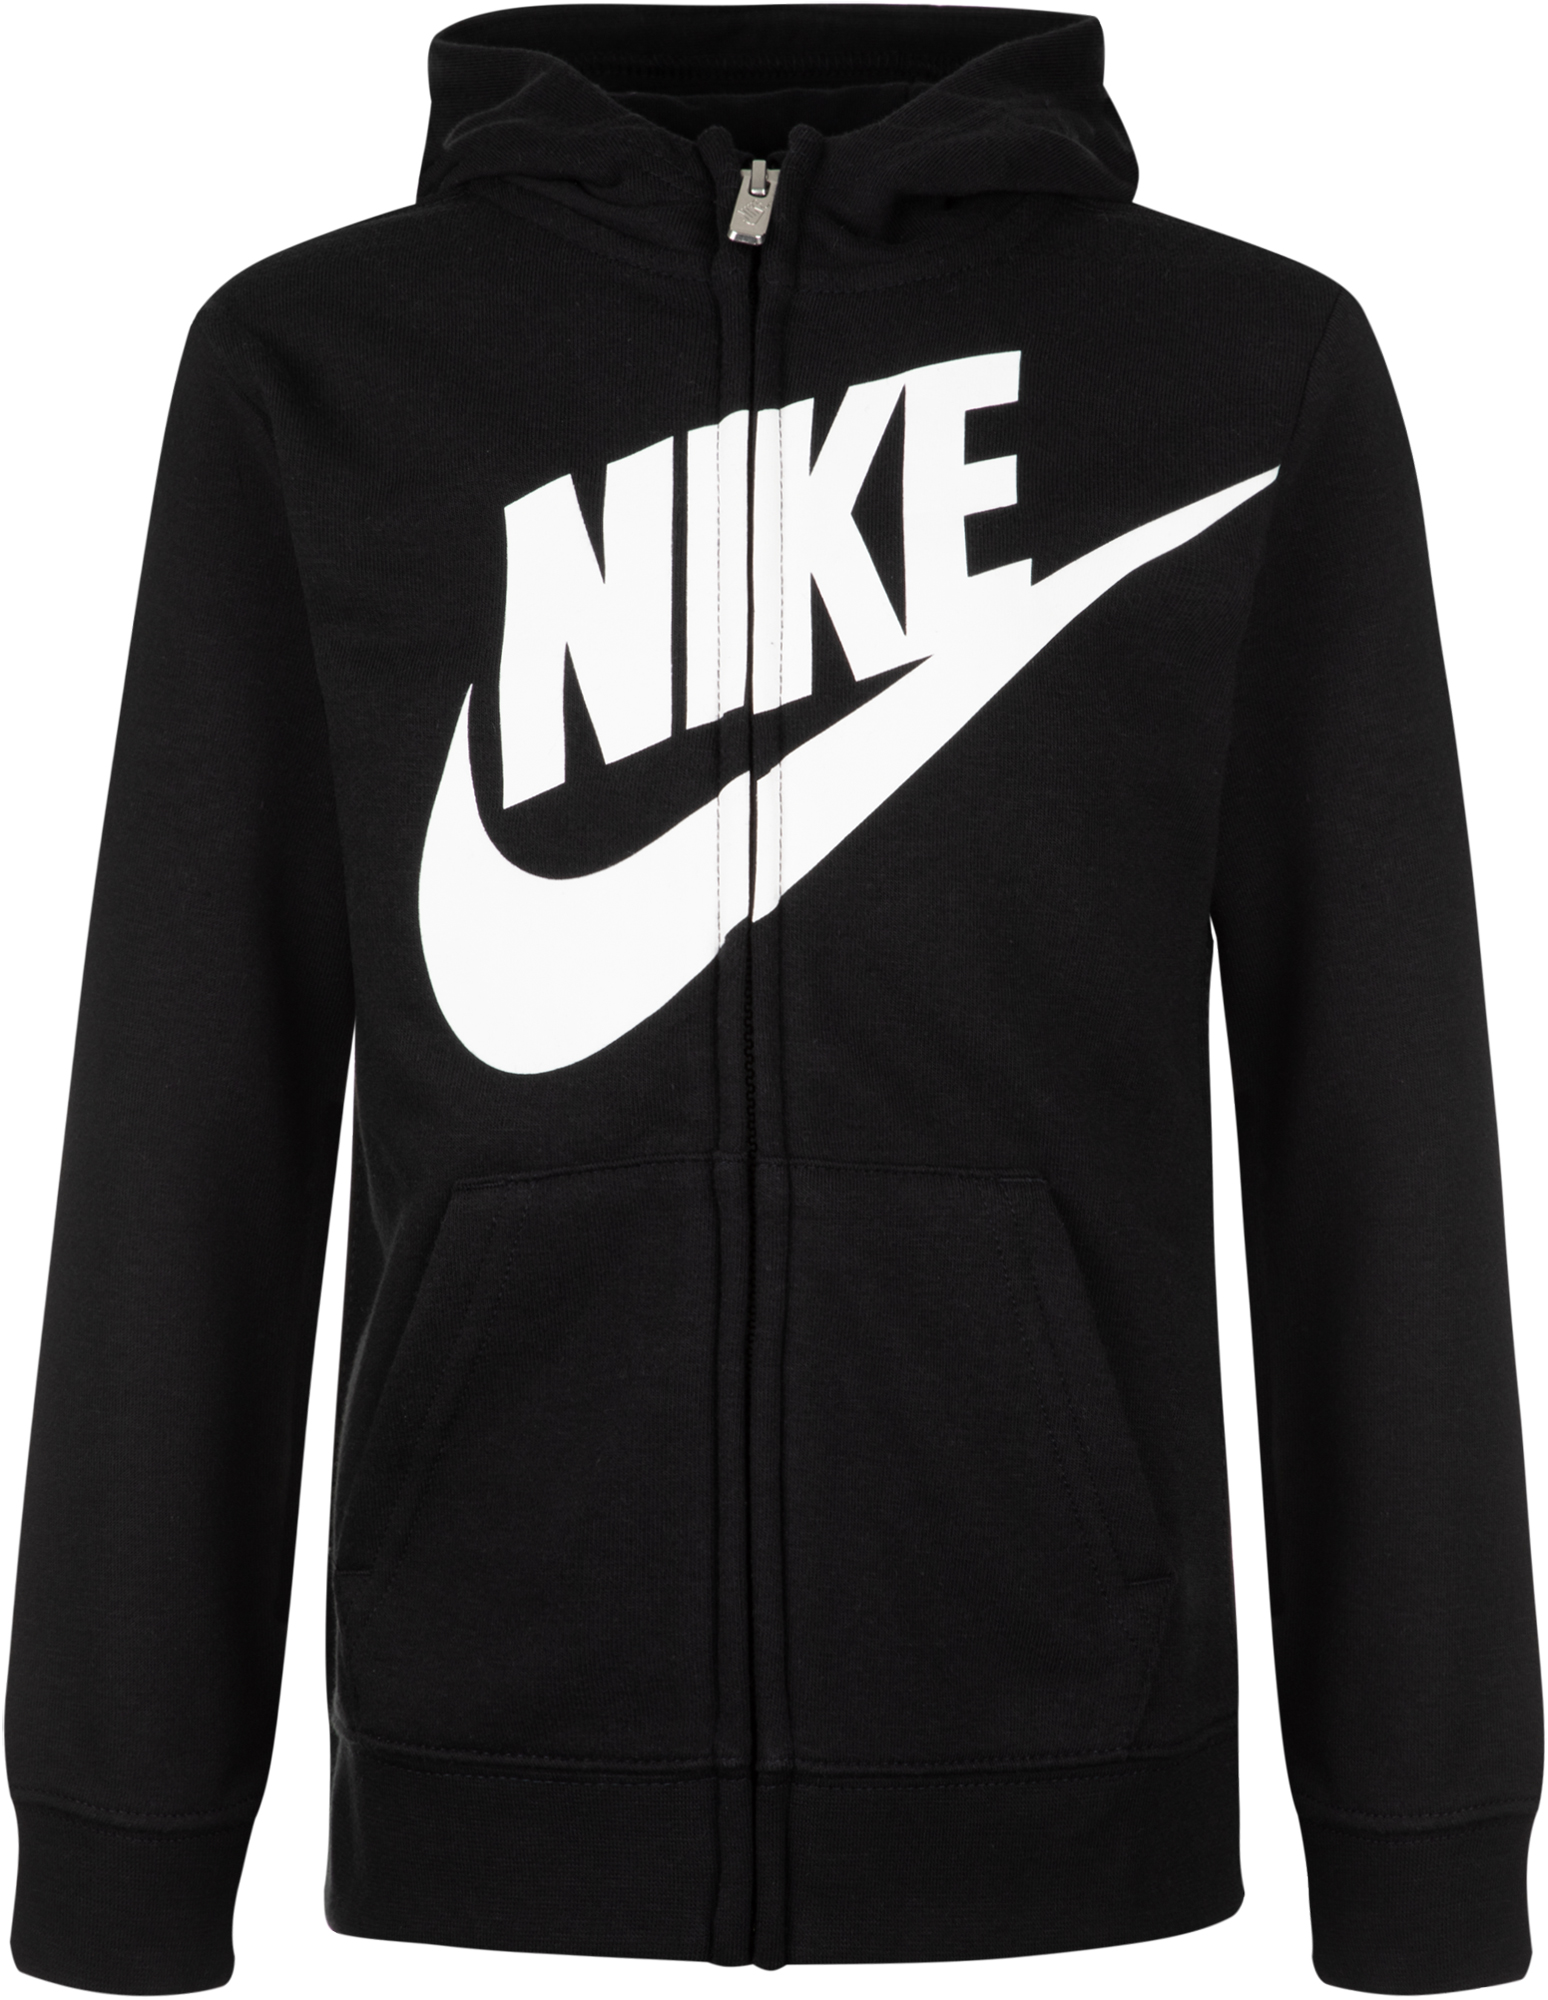 Nike Толстовка для мальчиков Nike Futura French Terry, размер 110 nike толстовка для мальчиков nike therma размер 122